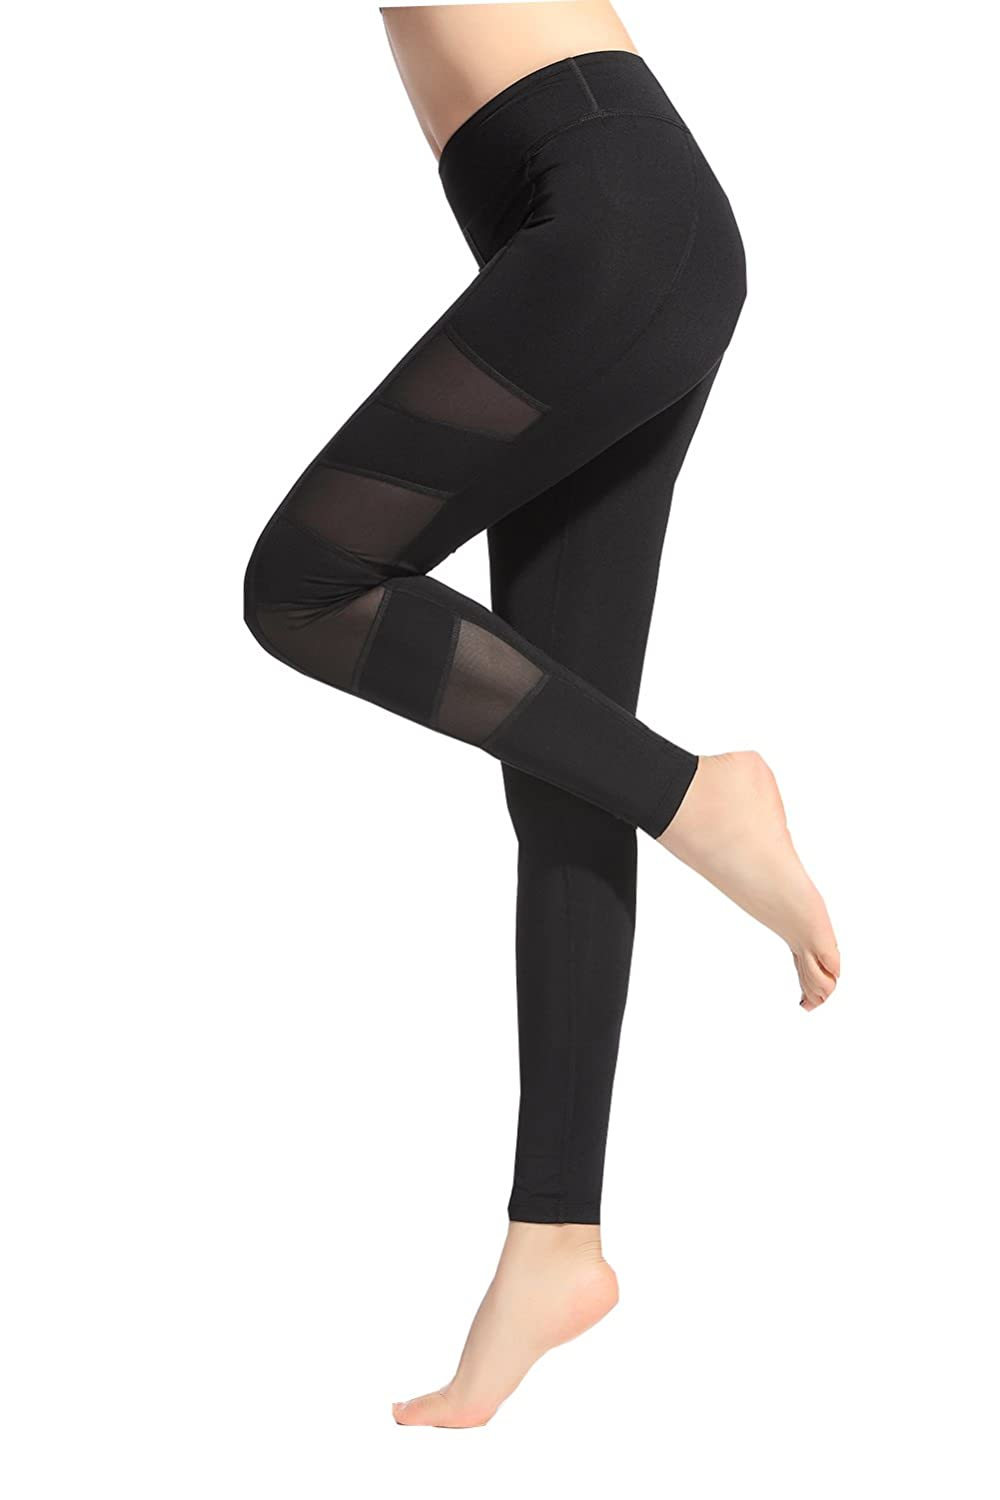 Lotsyle Women's Mesh Panels Stretchy Workout Sports Gym Yoga Leggings Ninth Pants